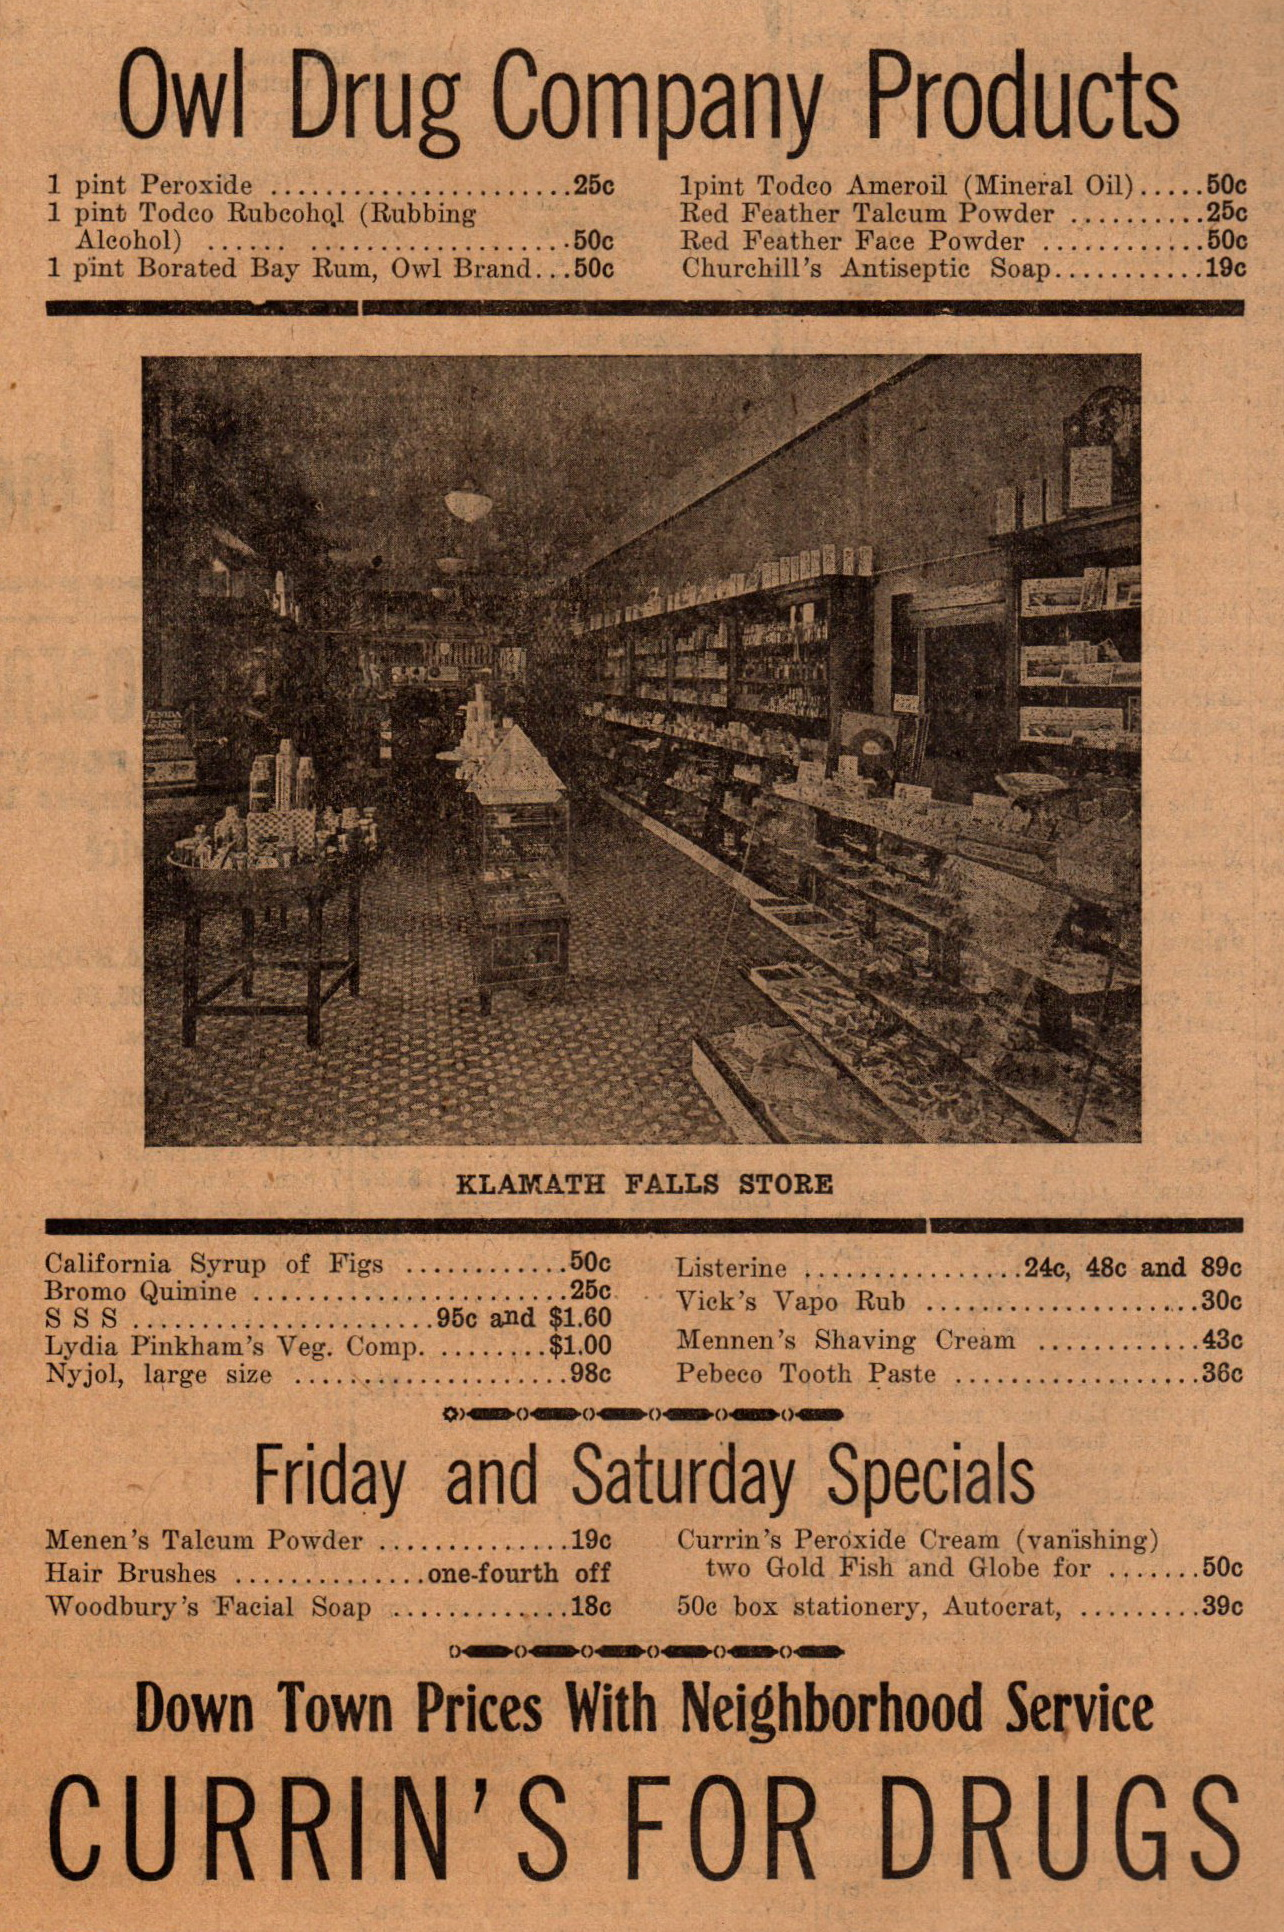 currins-for-drugs-klamath-falls-store-feb-1923